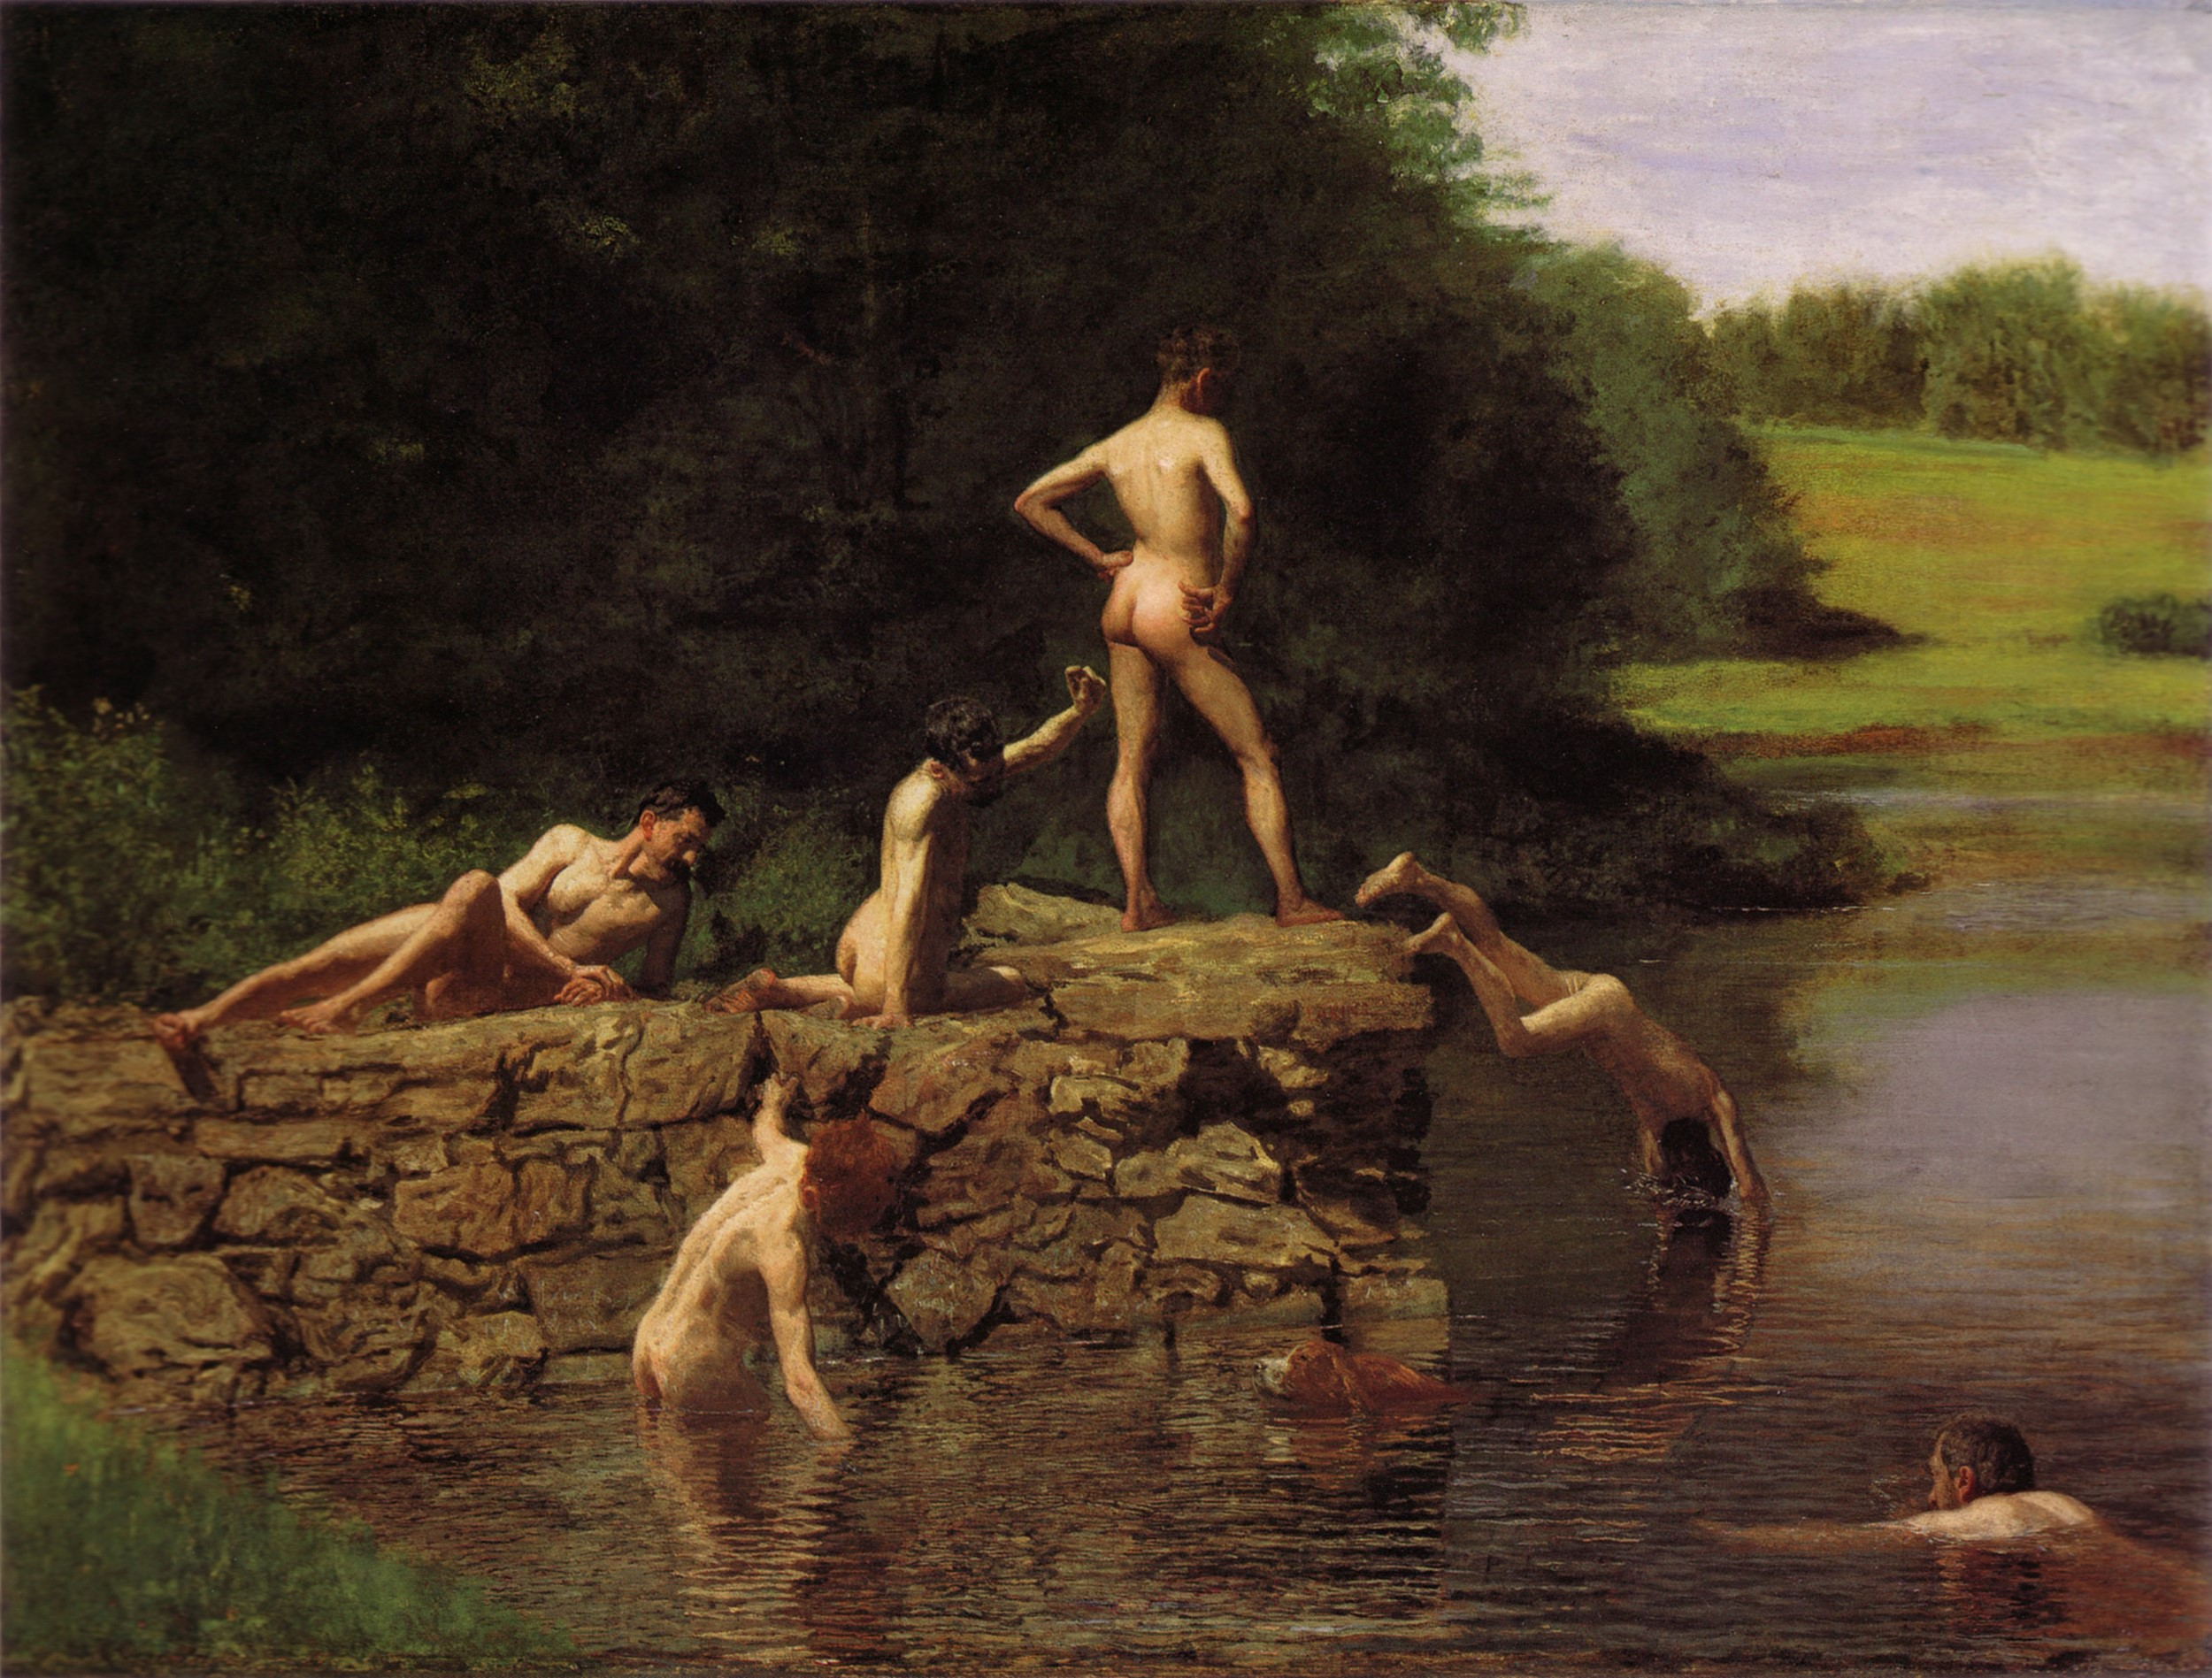 Image 1: Thomas Eakins –  Swimming , 1884. Oil on canvas. Amon Carter Museum of American Art, Fort Worth, TX